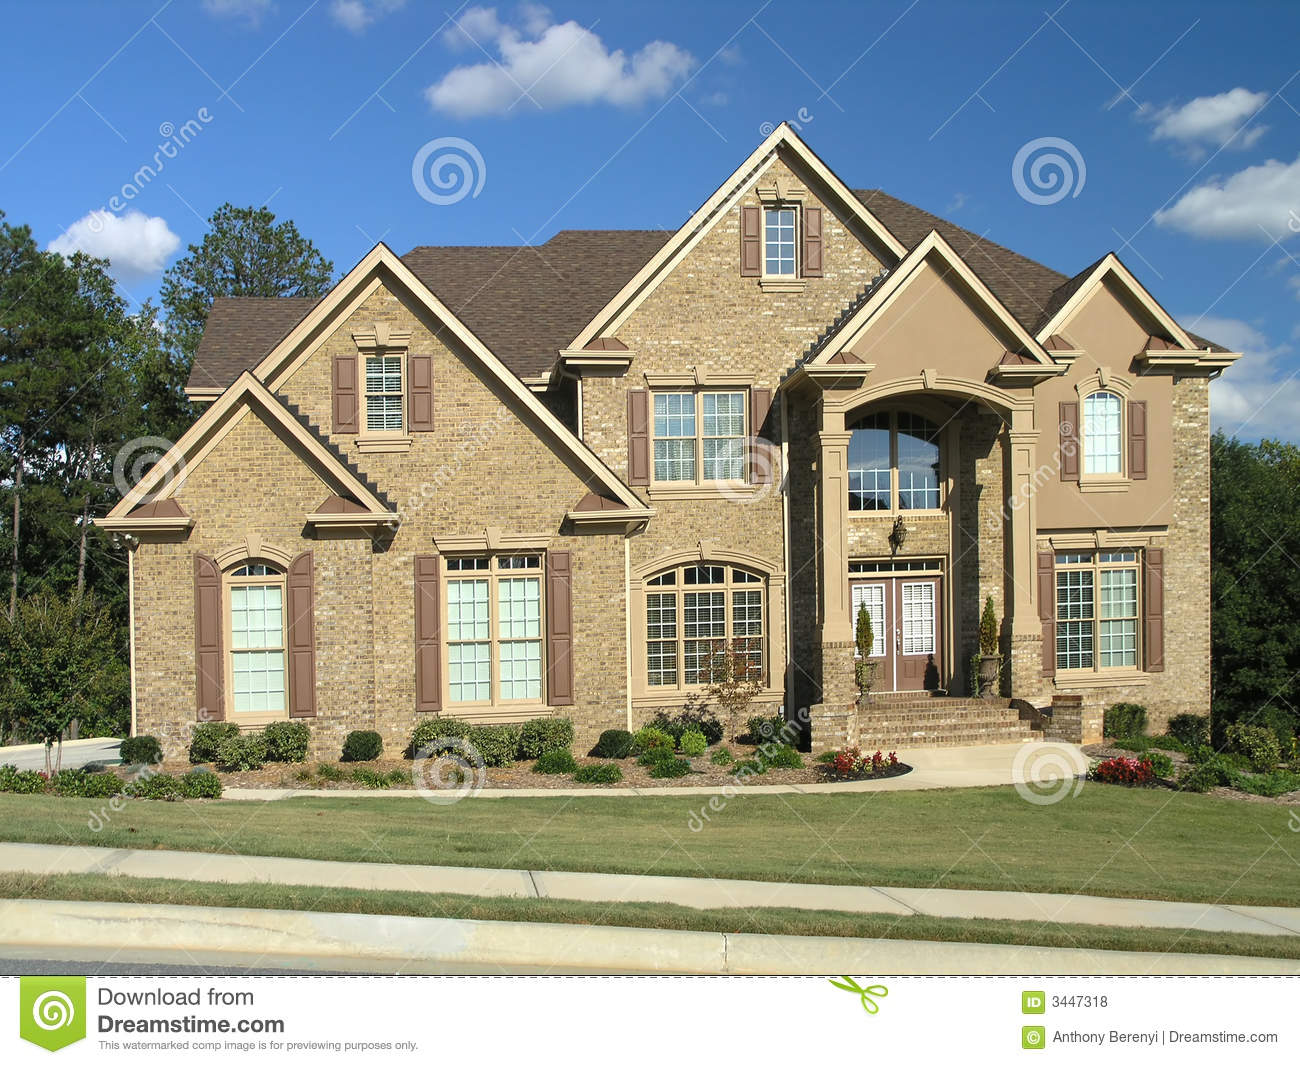 Luxury Home Exterior 53 Royalty Free Stock Photos Image